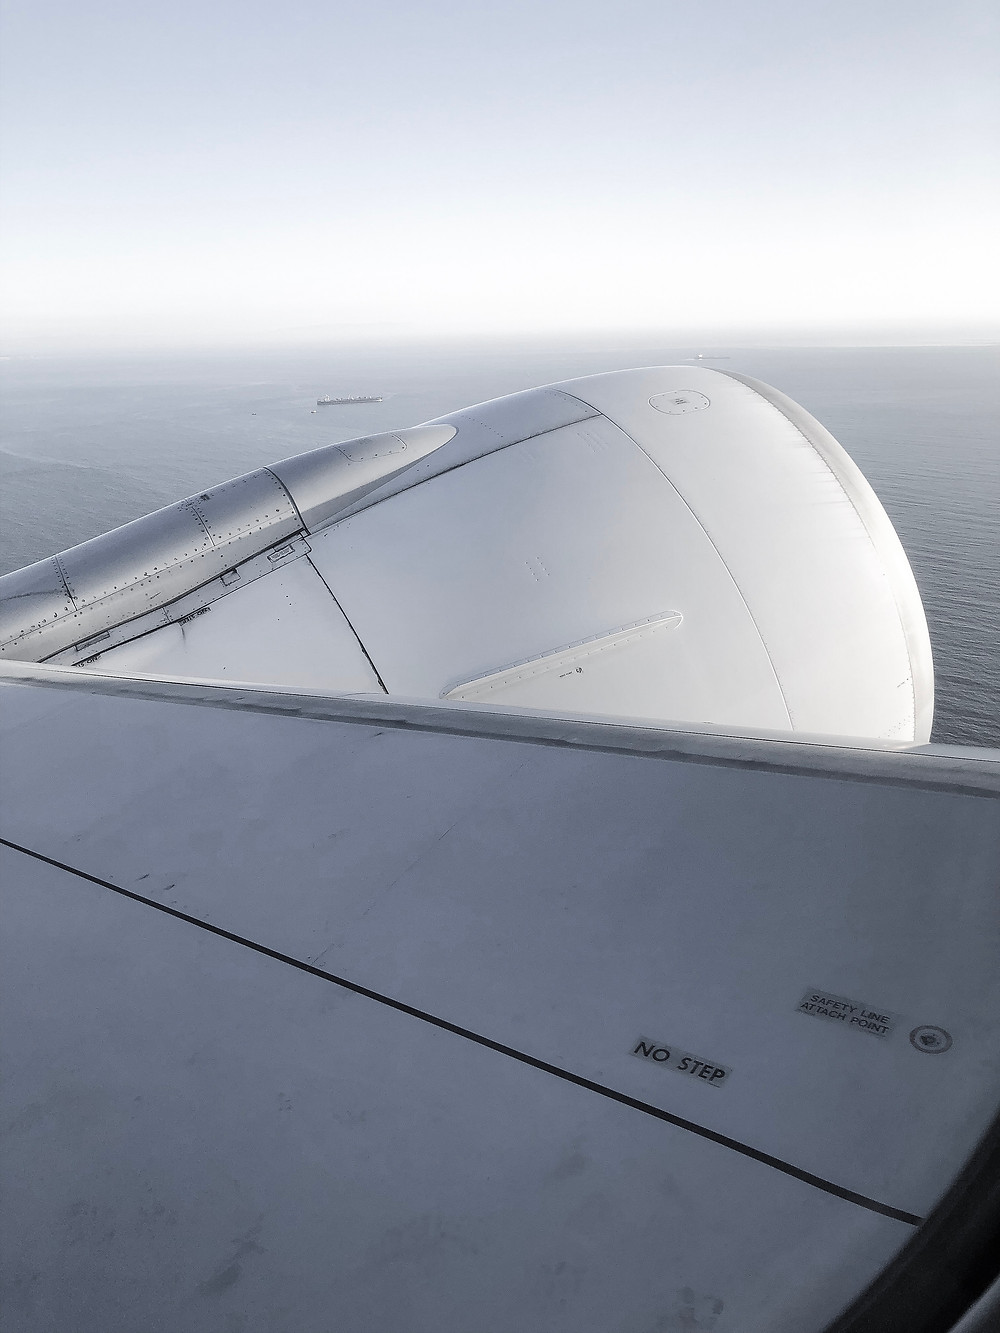 Air France Business Class, The Window View